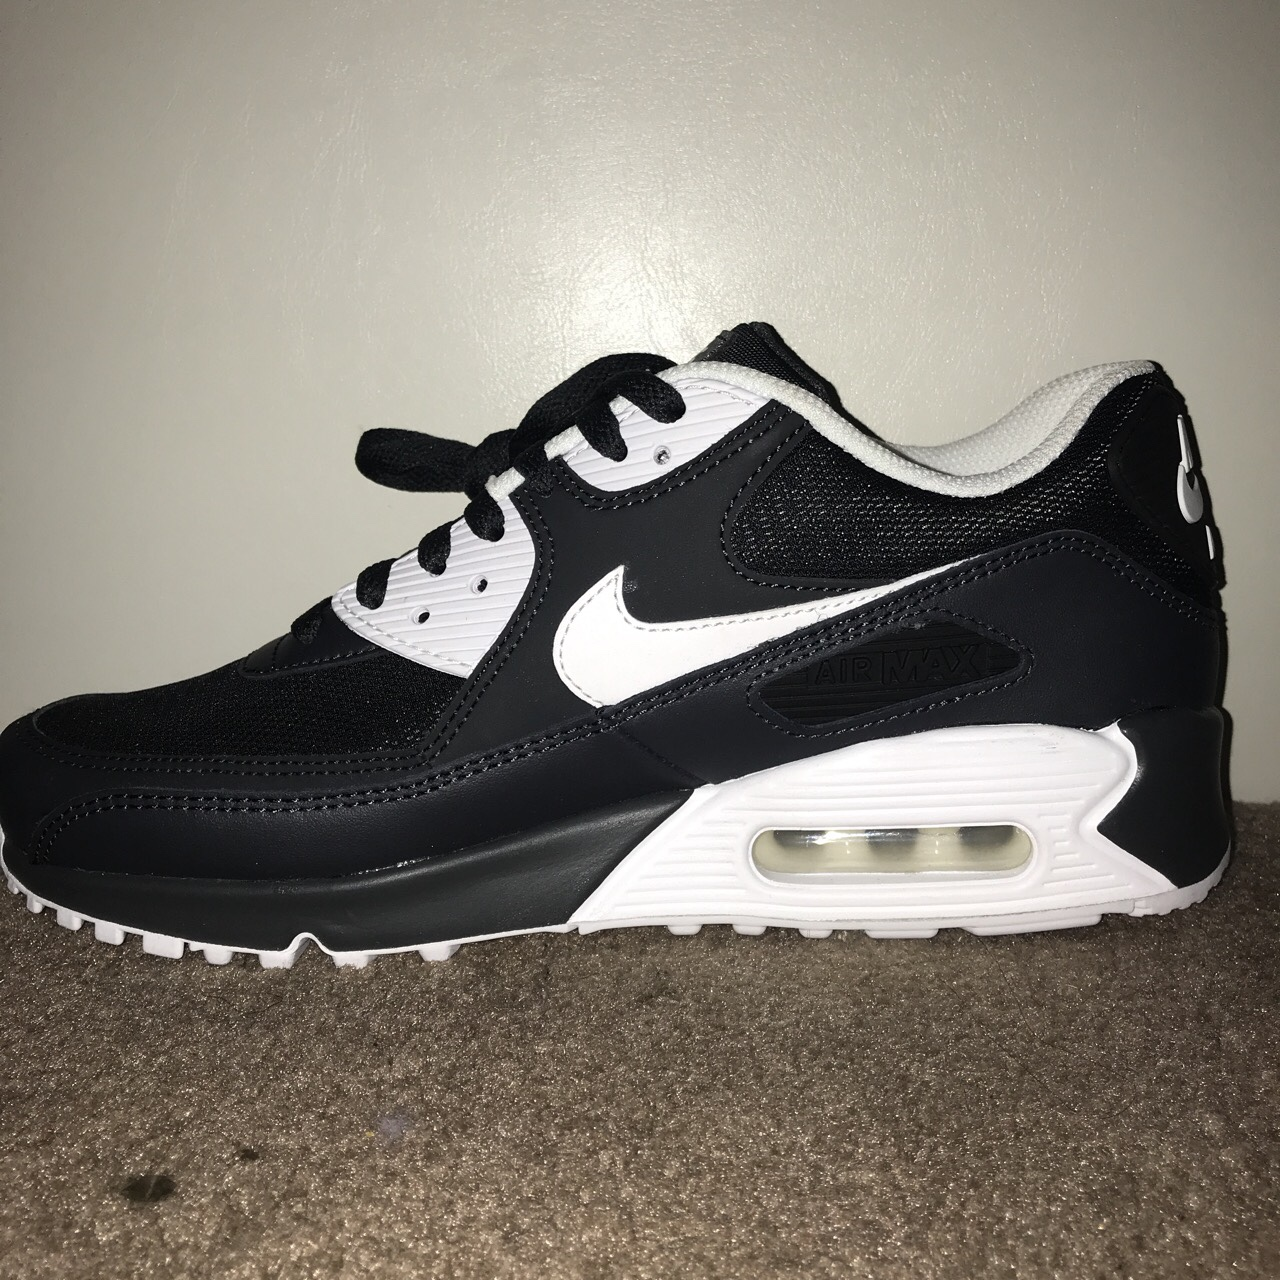 Nike air max 90 Anth/White/Black. Size 7. Not been...